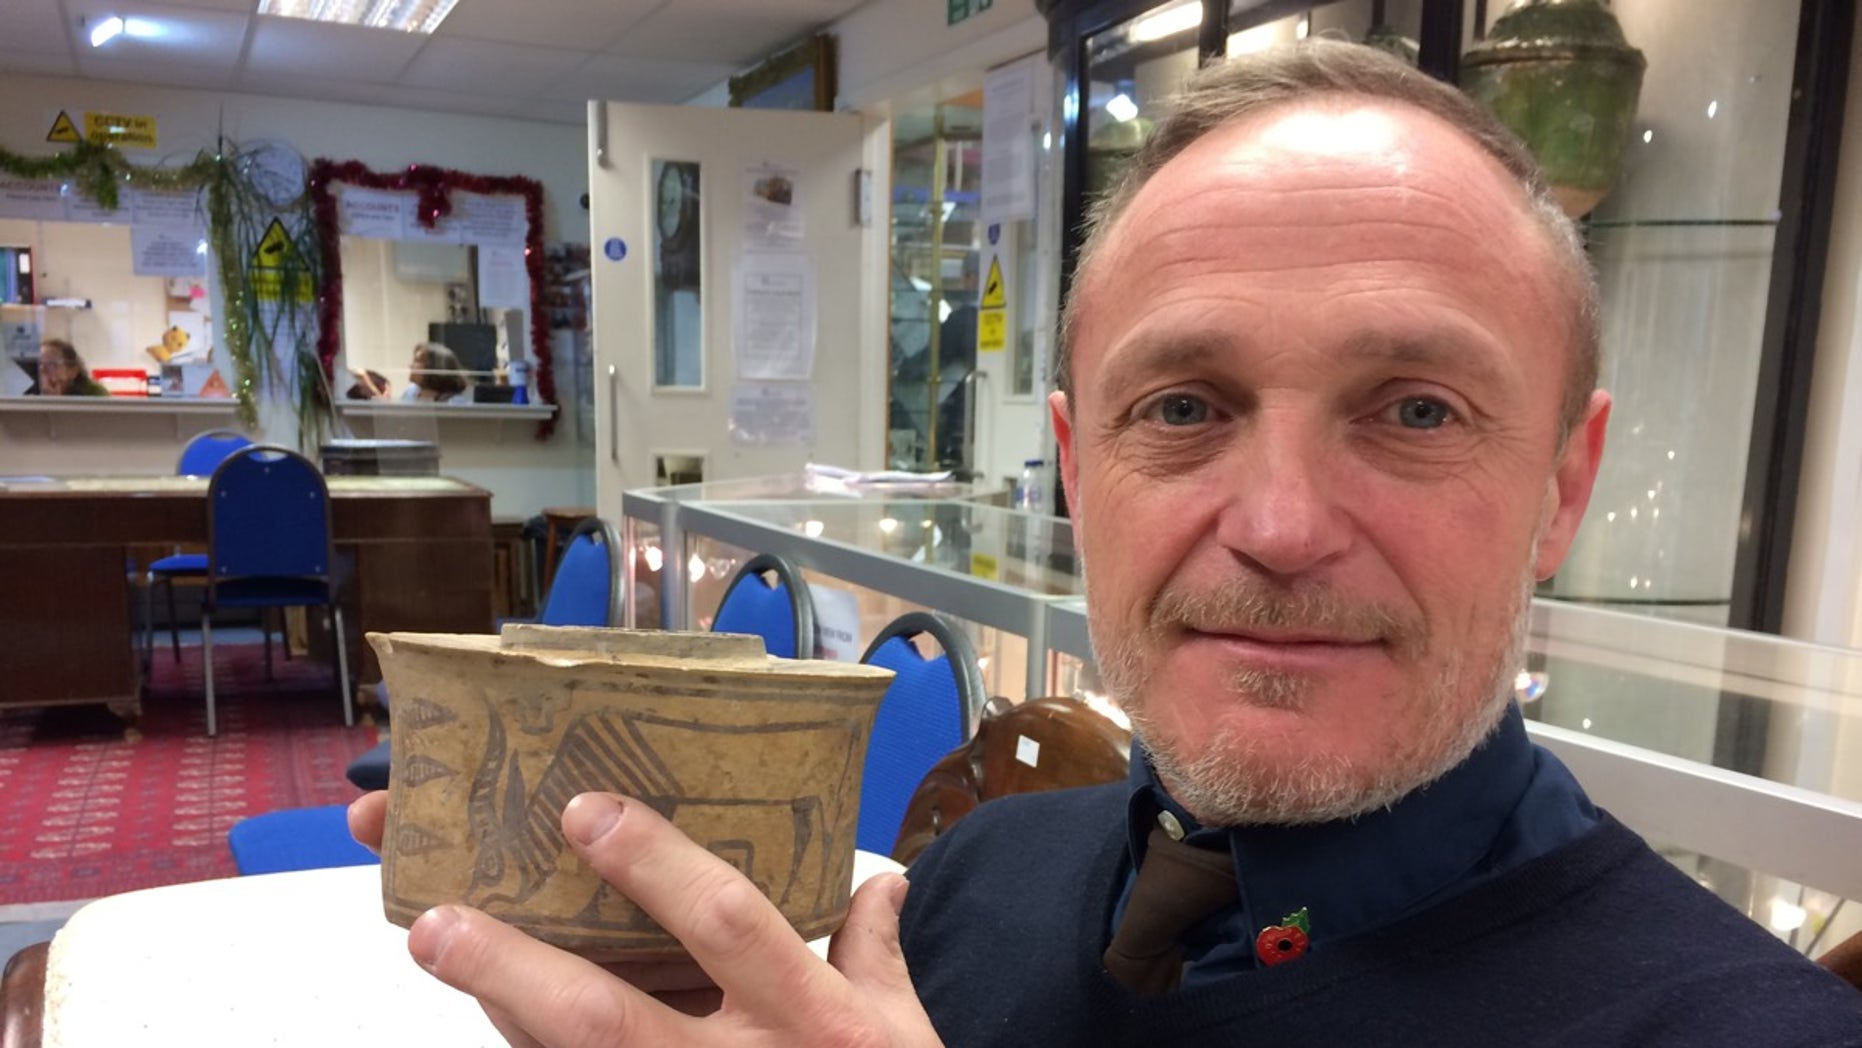 Who knew? This pottery jar being sold at a flea market was made about 2,000 years before the birth of Christ.